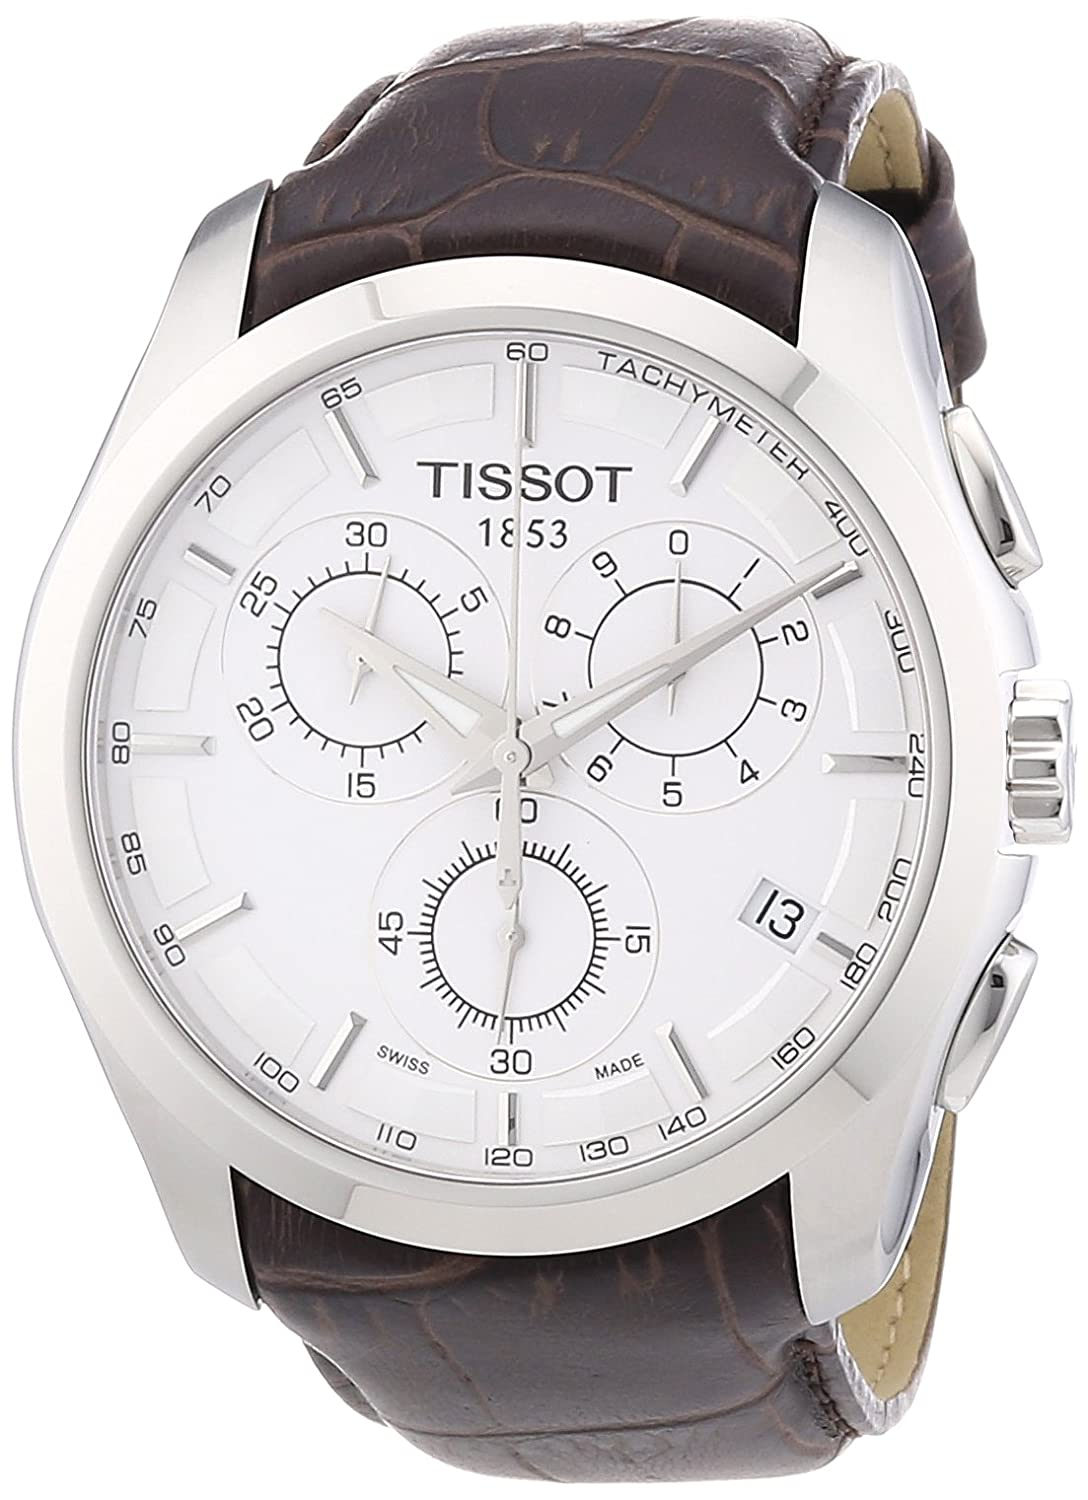 buy tissot men s couturier watch t0356171603100 leather chrono buy tissot men s couturier watch t0356171603100 leather chrono online at low prices in amazon in